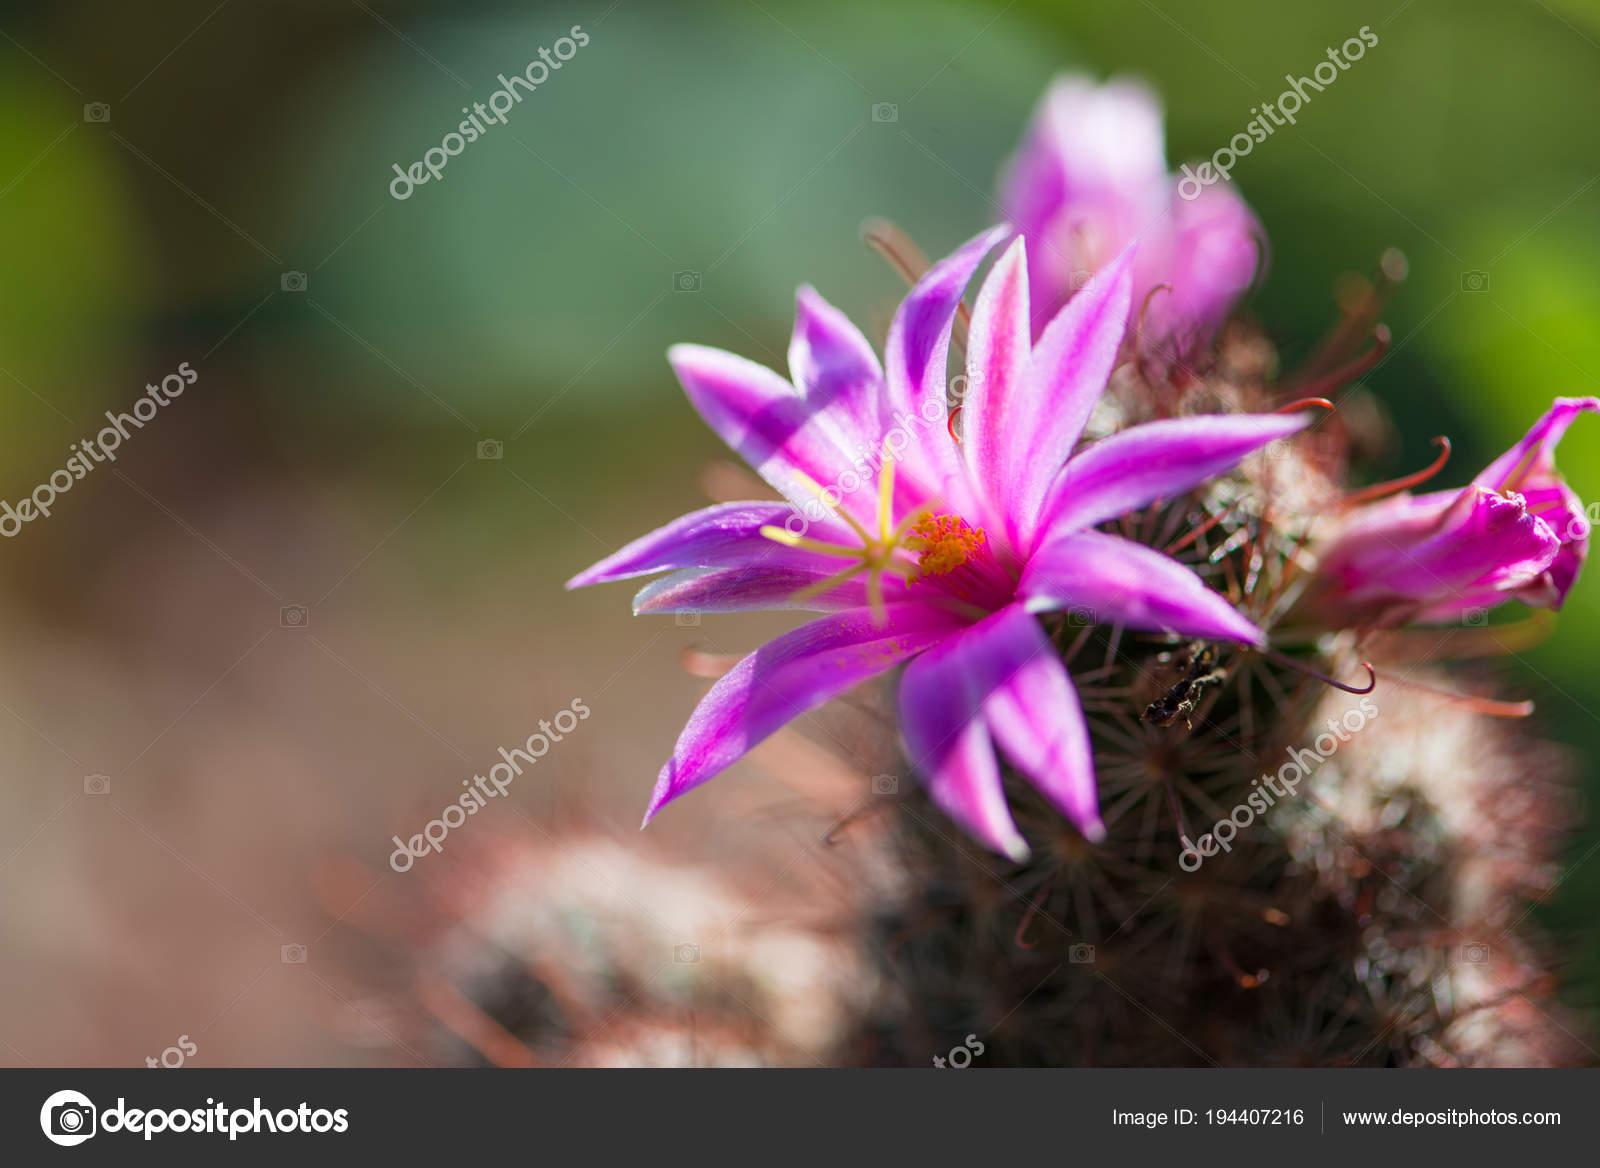 Closed Up Pink Cactus Flower In Pot Stock Photo Khuntapoldep